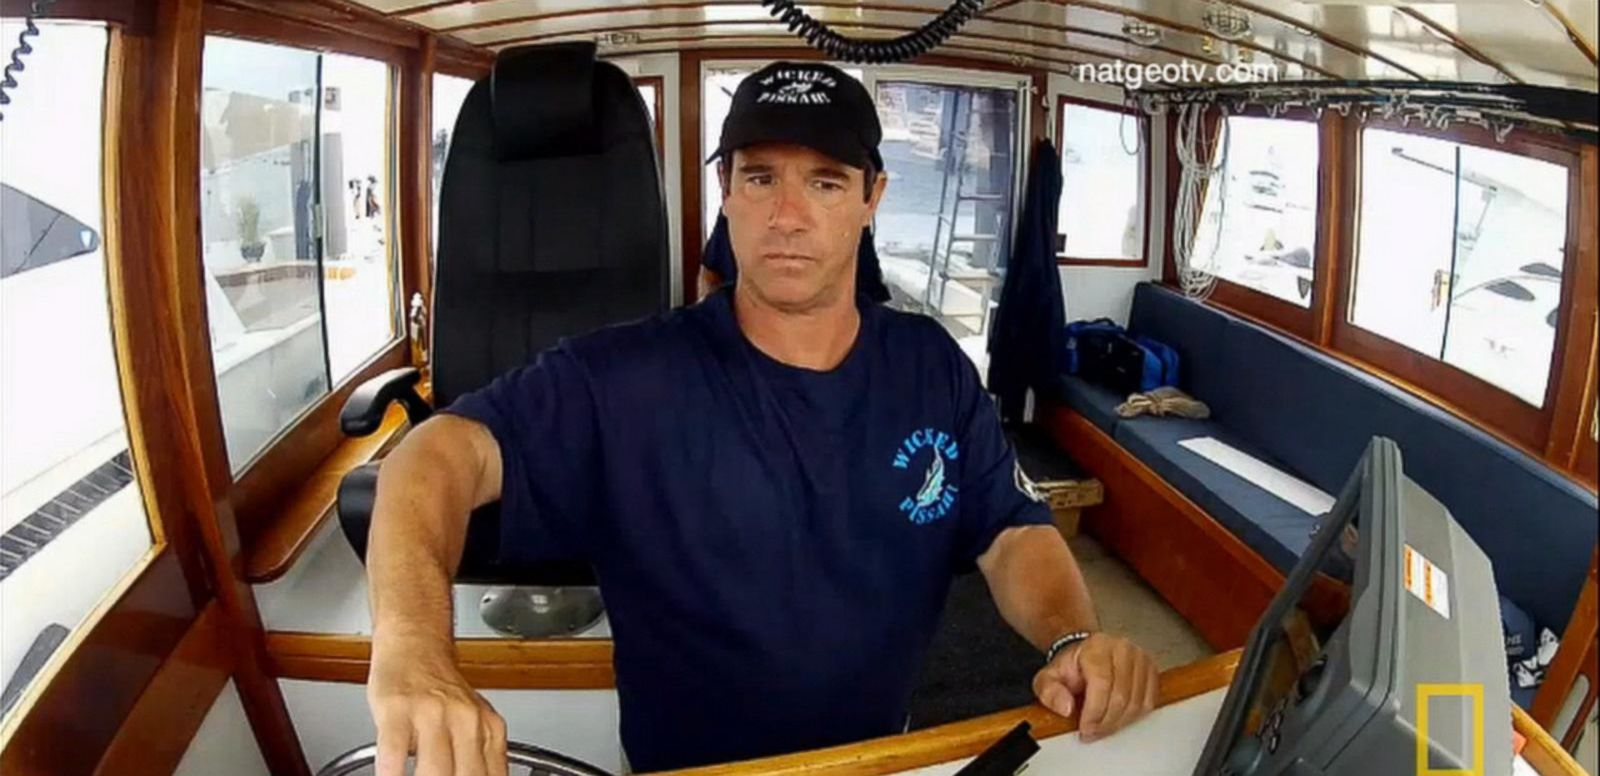 VIDEO: 'Wicked Tuna' Star Paul Herbert Under Federal Indictment for Fraud